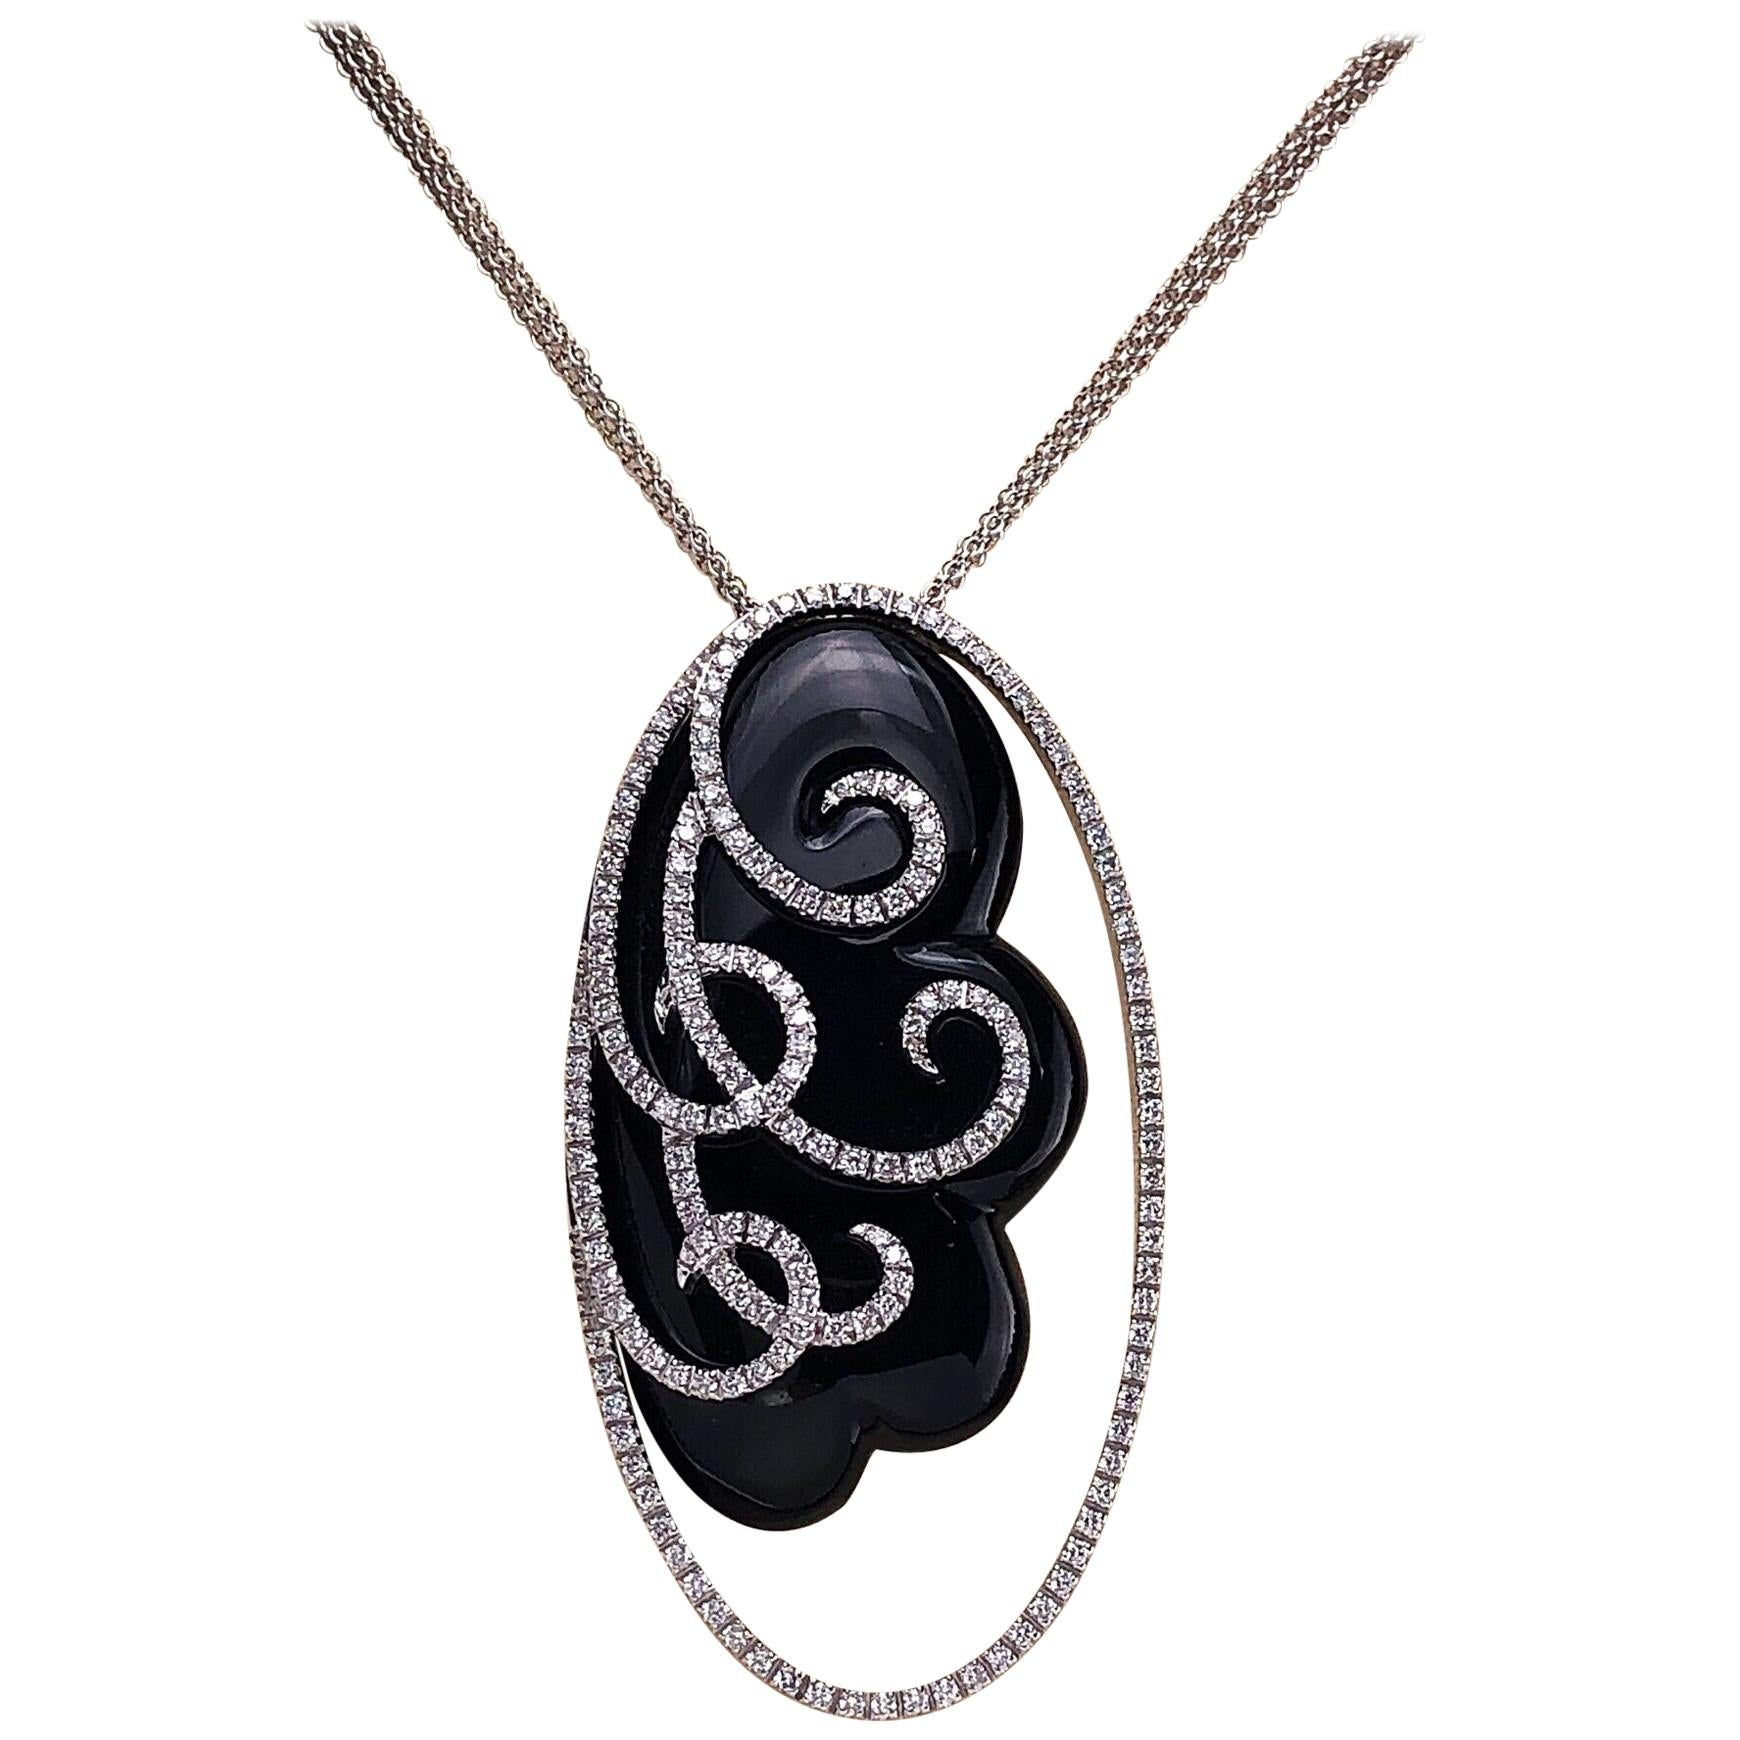 2e064638d4b Antique Onyx Necklaces - 491 For Sale at 1stdibs